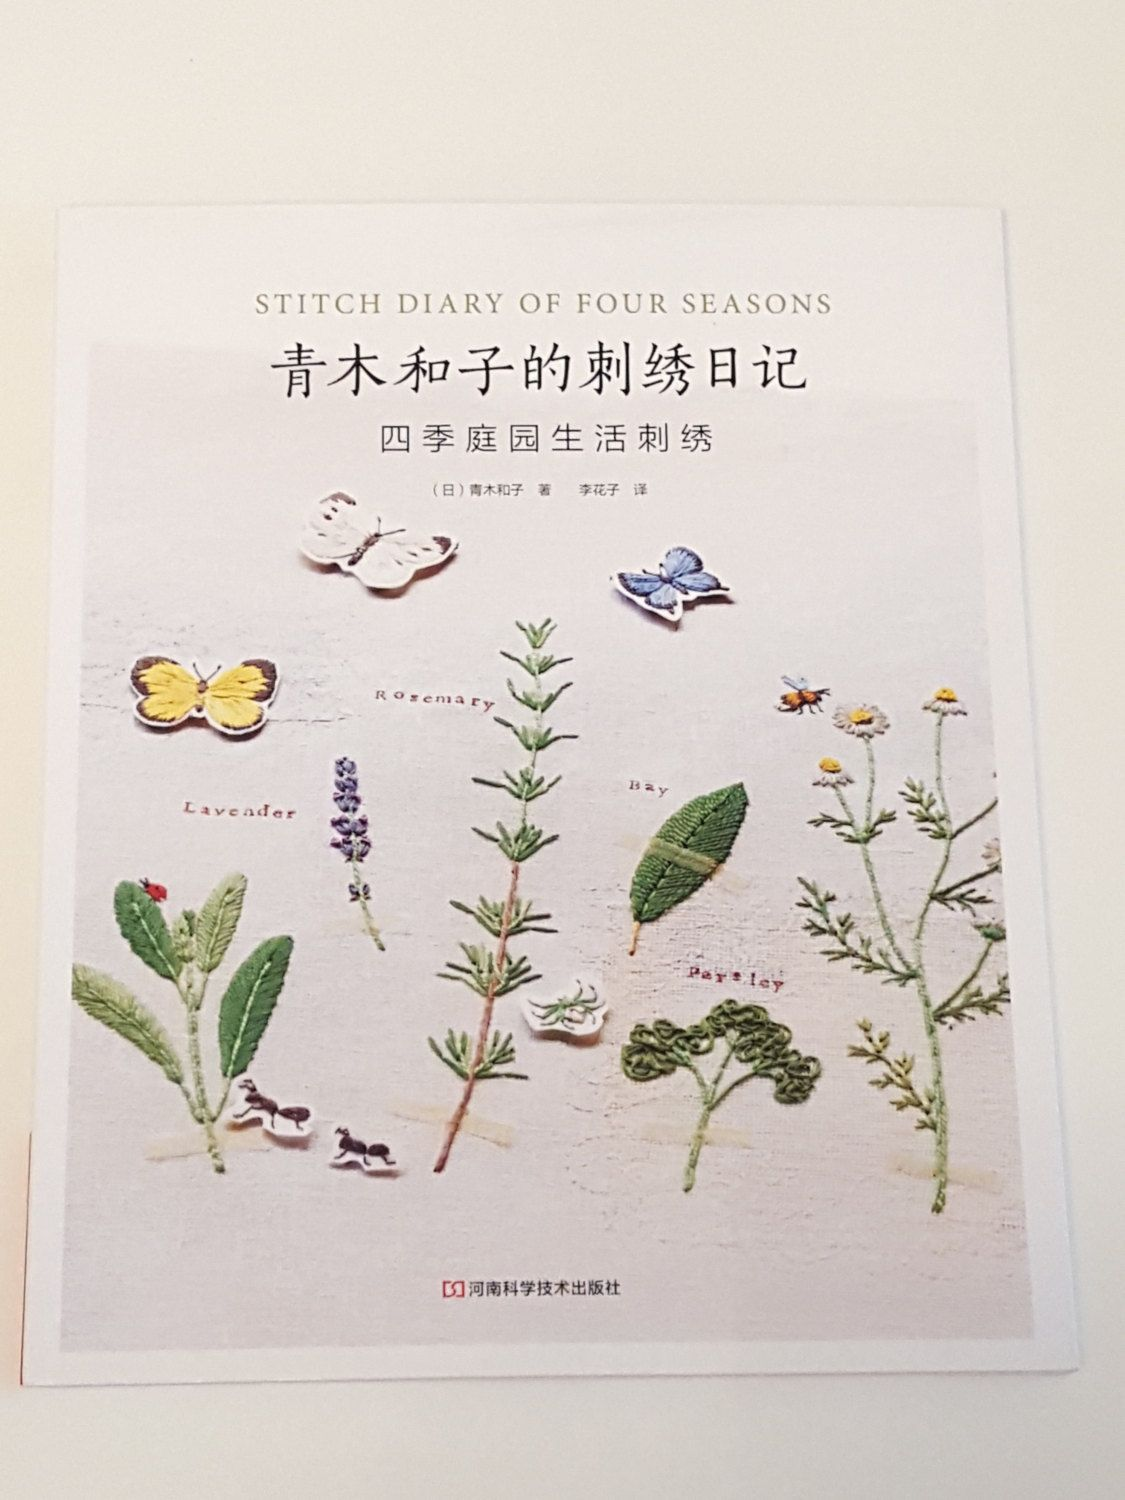 Aoki kazuko embroidery book stitch diary of four seasons